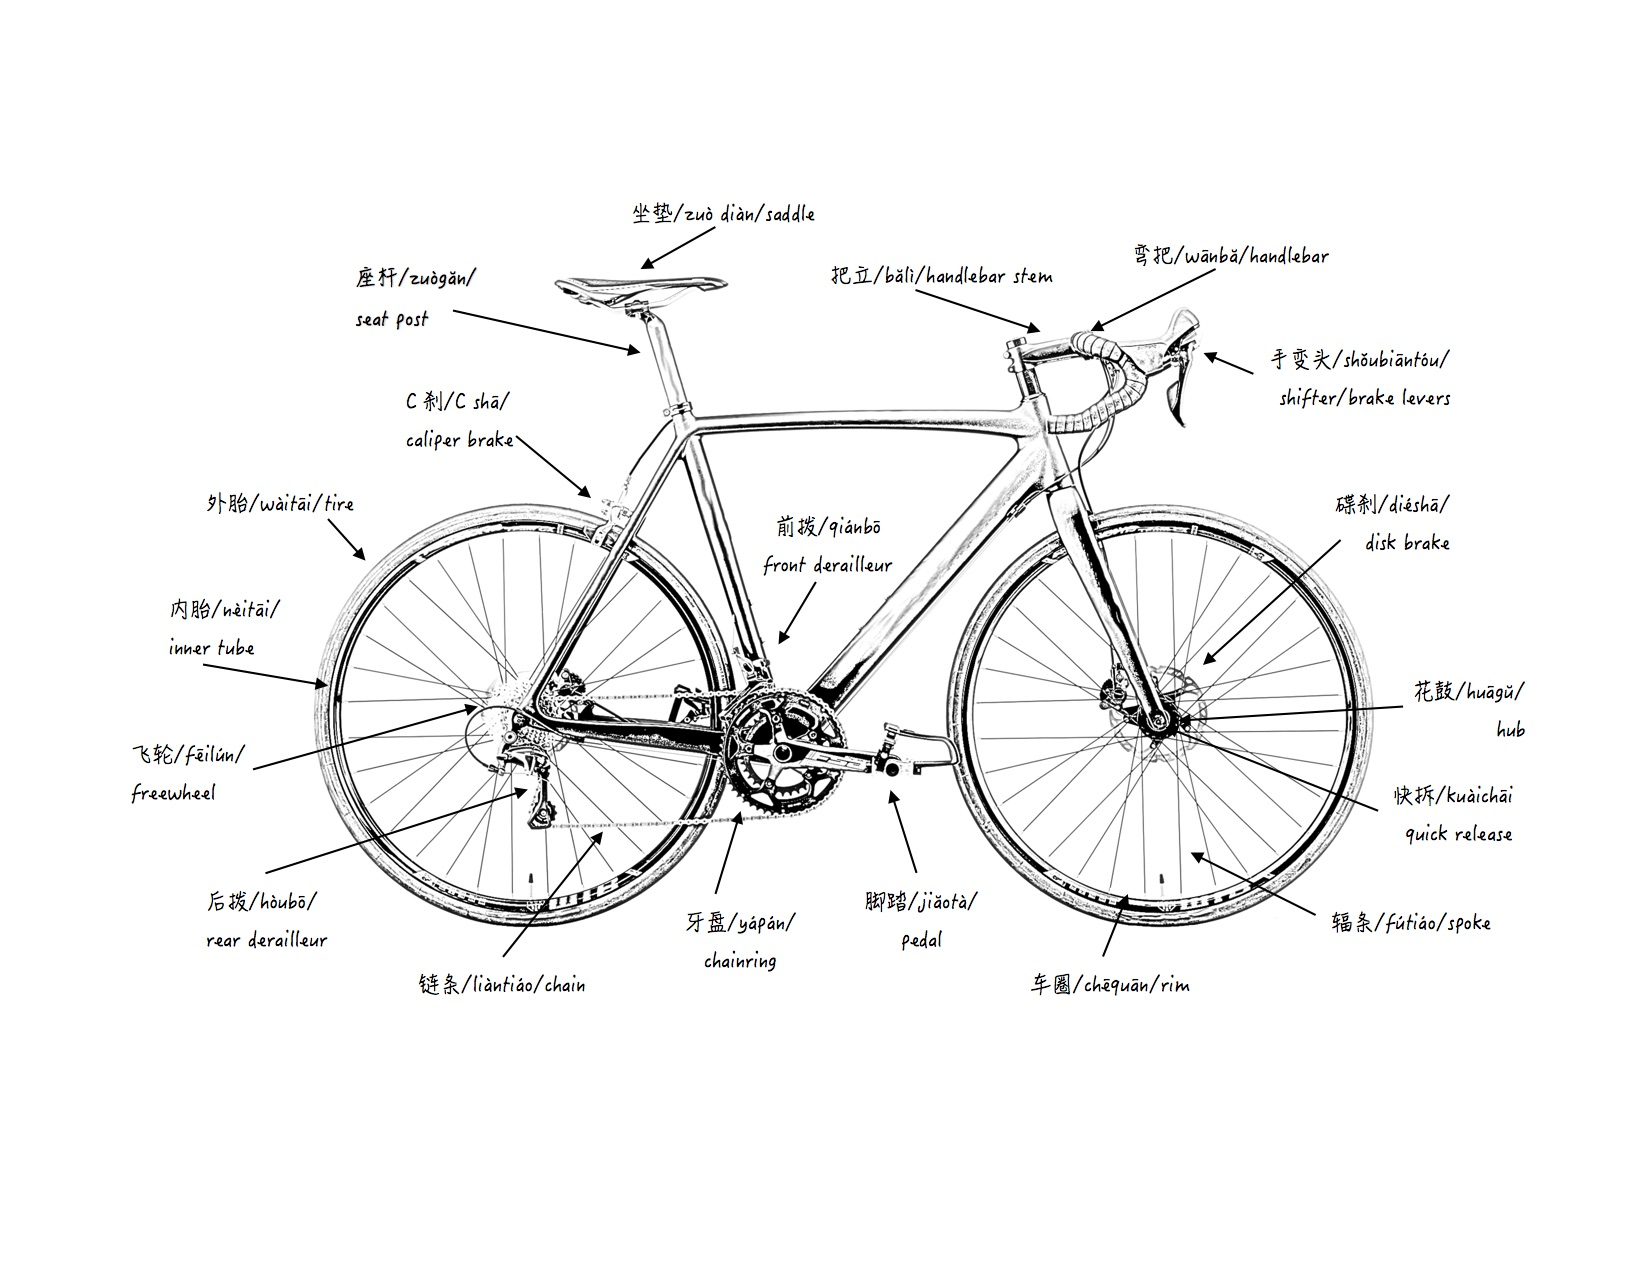 chinese bicycle parts diagram museum fatigue rh museumfatigue org Bicycle Drawing Bicycle Components Diagram